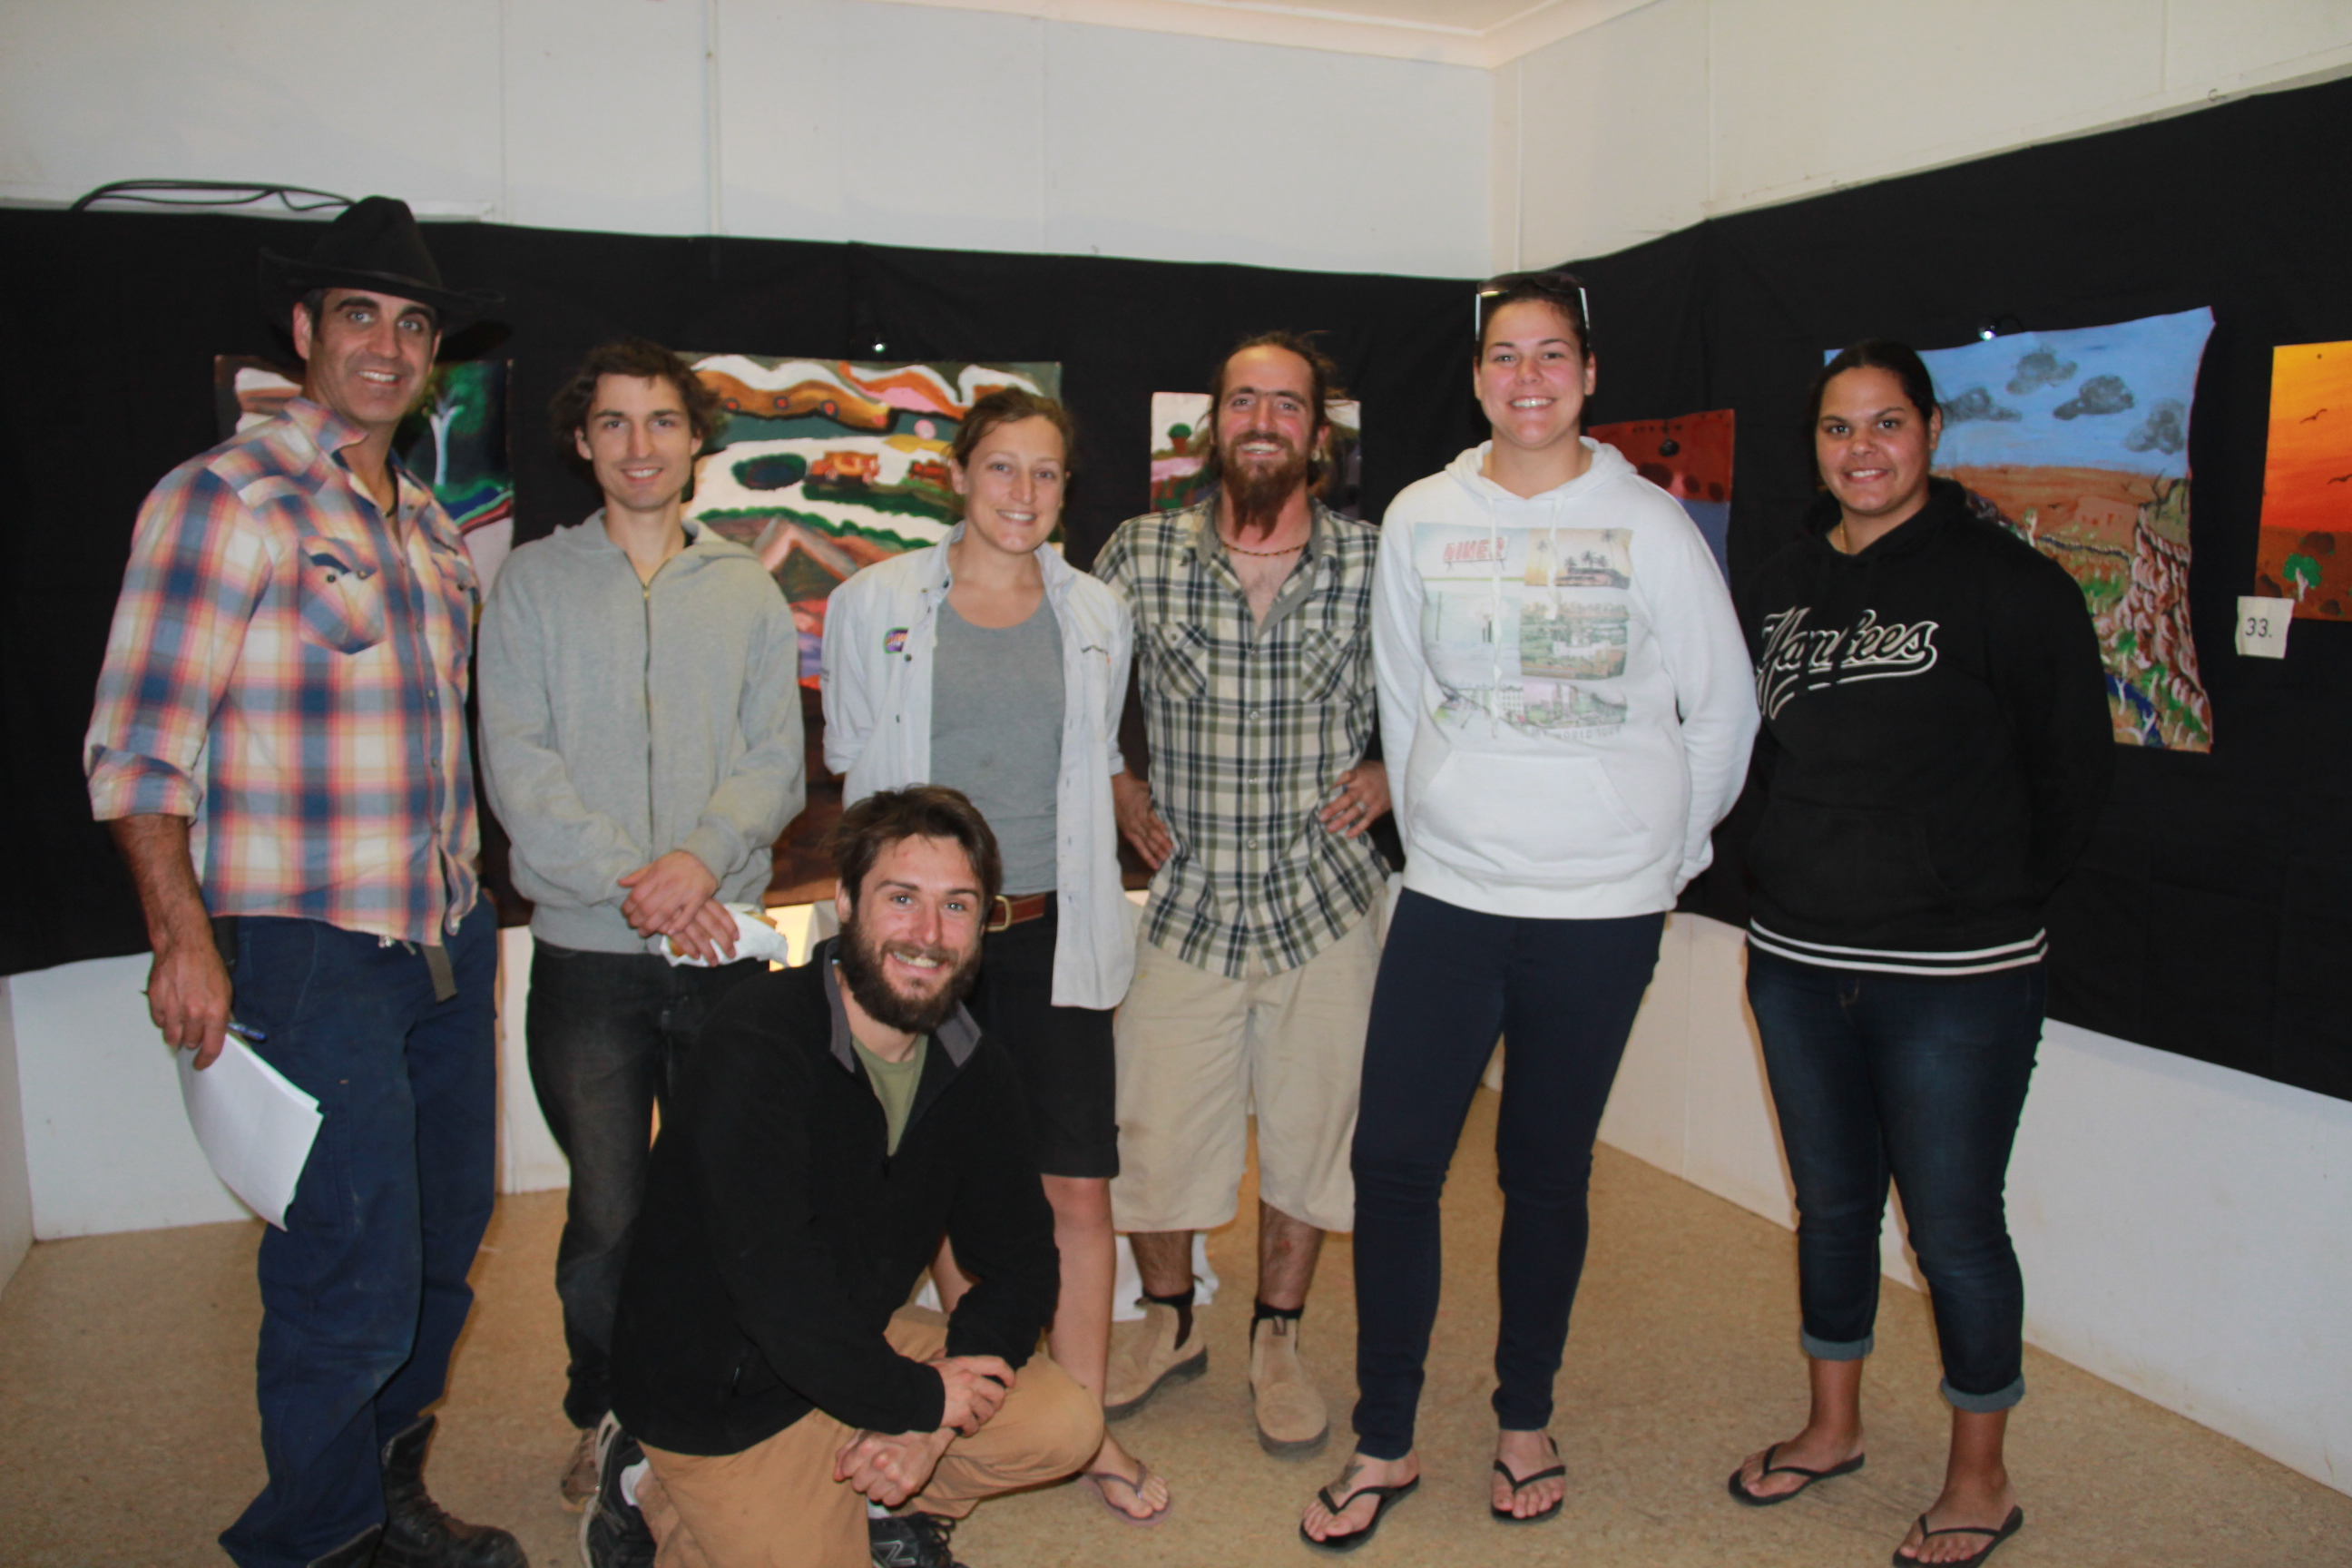 Exhibition Visitors. From to left to right: Damien Thornber, Carlo McAbee, Emily Minchin, Leo Ollivier, Ebony Humble, Larissa Bennell & Josh McHale (at front) - The Desert Feet Tour and Ngurra Kujunka mob enjoying the vibe at the exhibition